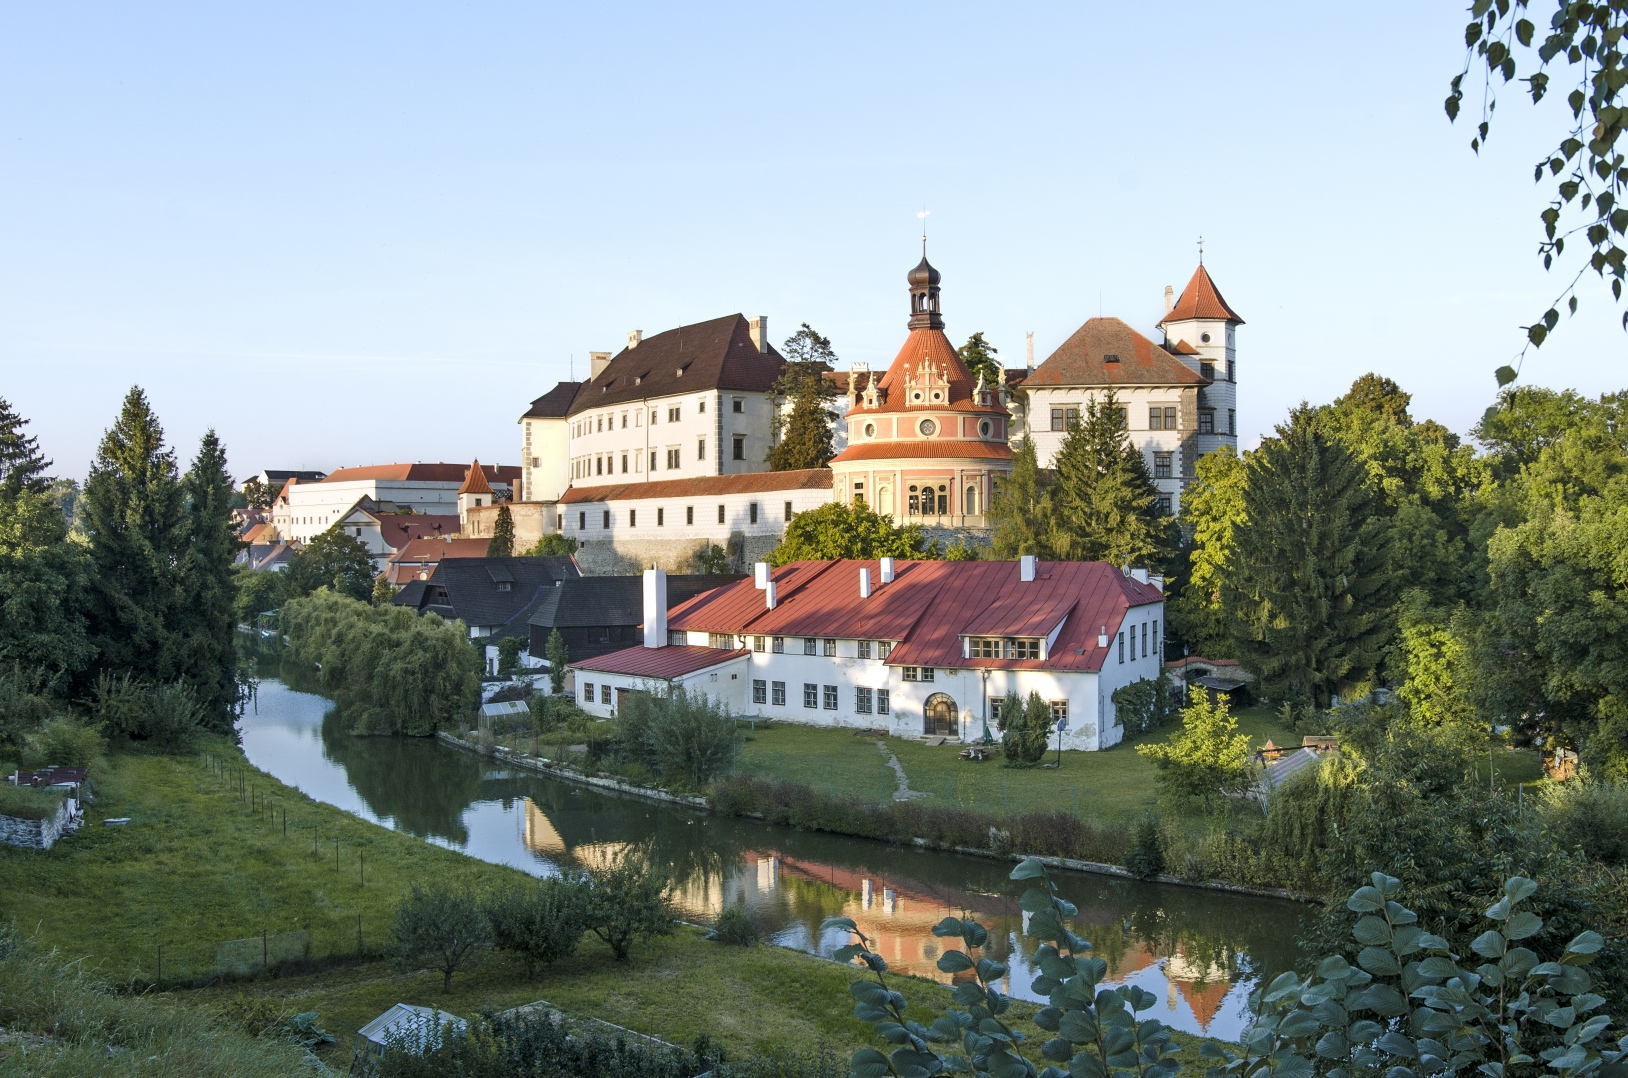 Jindřichův Hradec Castle, view across the Nežárka River from the so-called Viewpoint in the New Building.